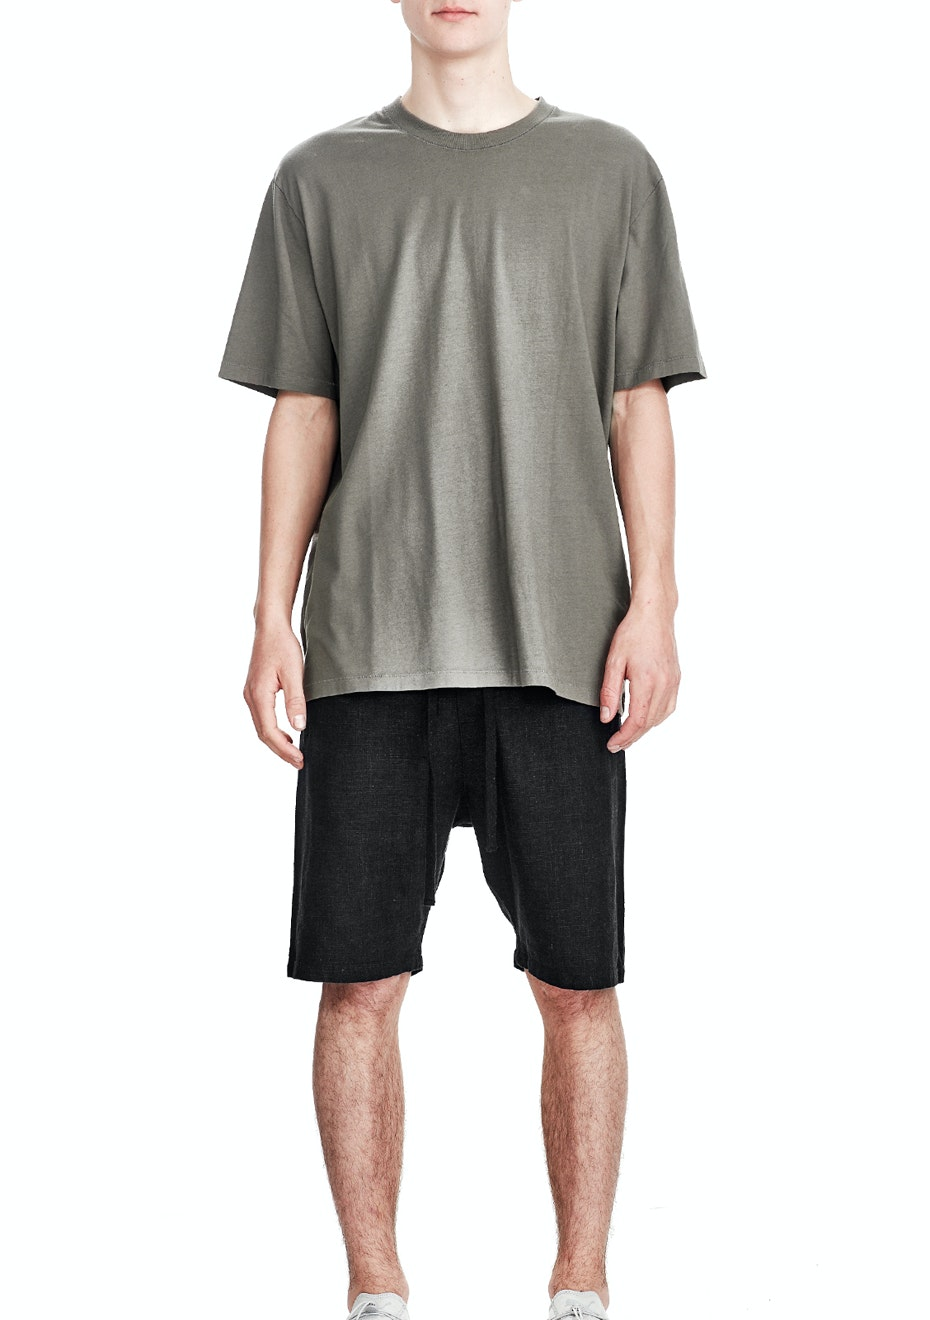 Commoners - Relaxed Tee  - Sage